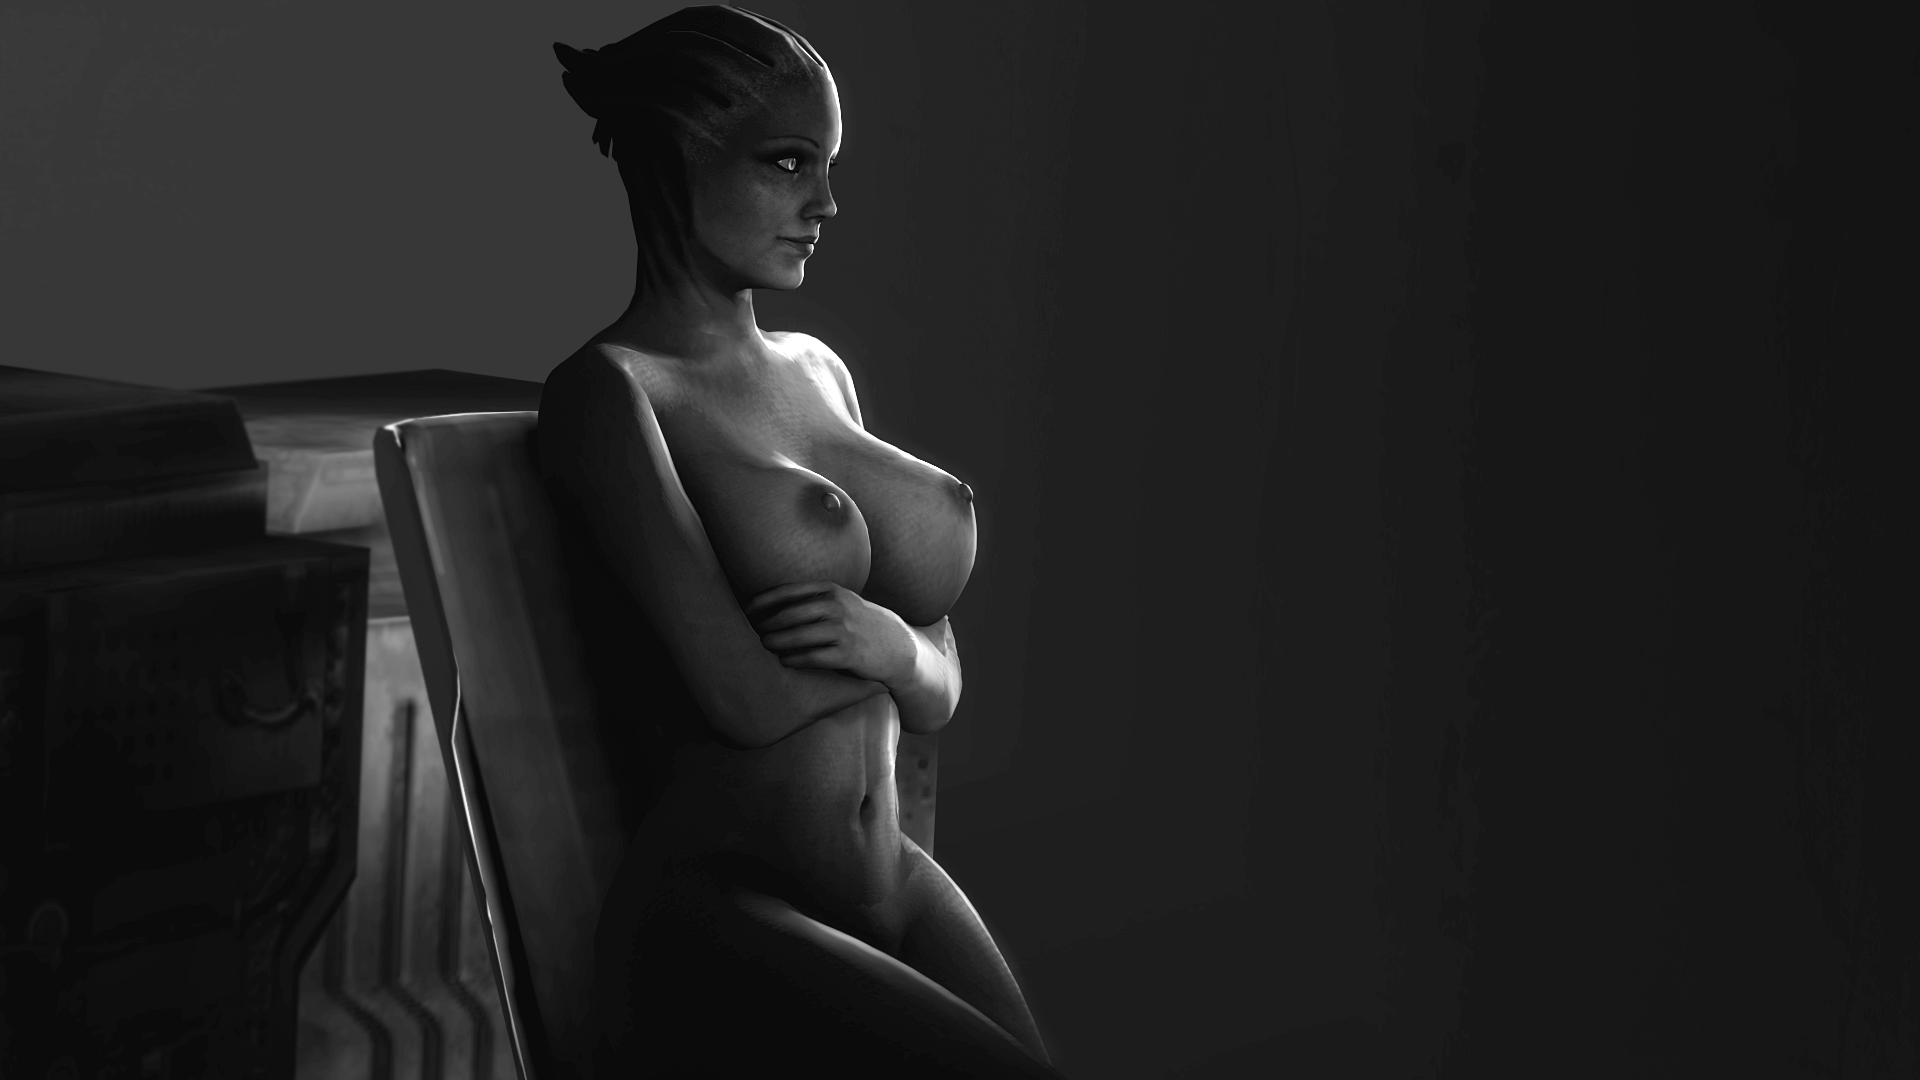 Liara hd naked boobs cartoon pic